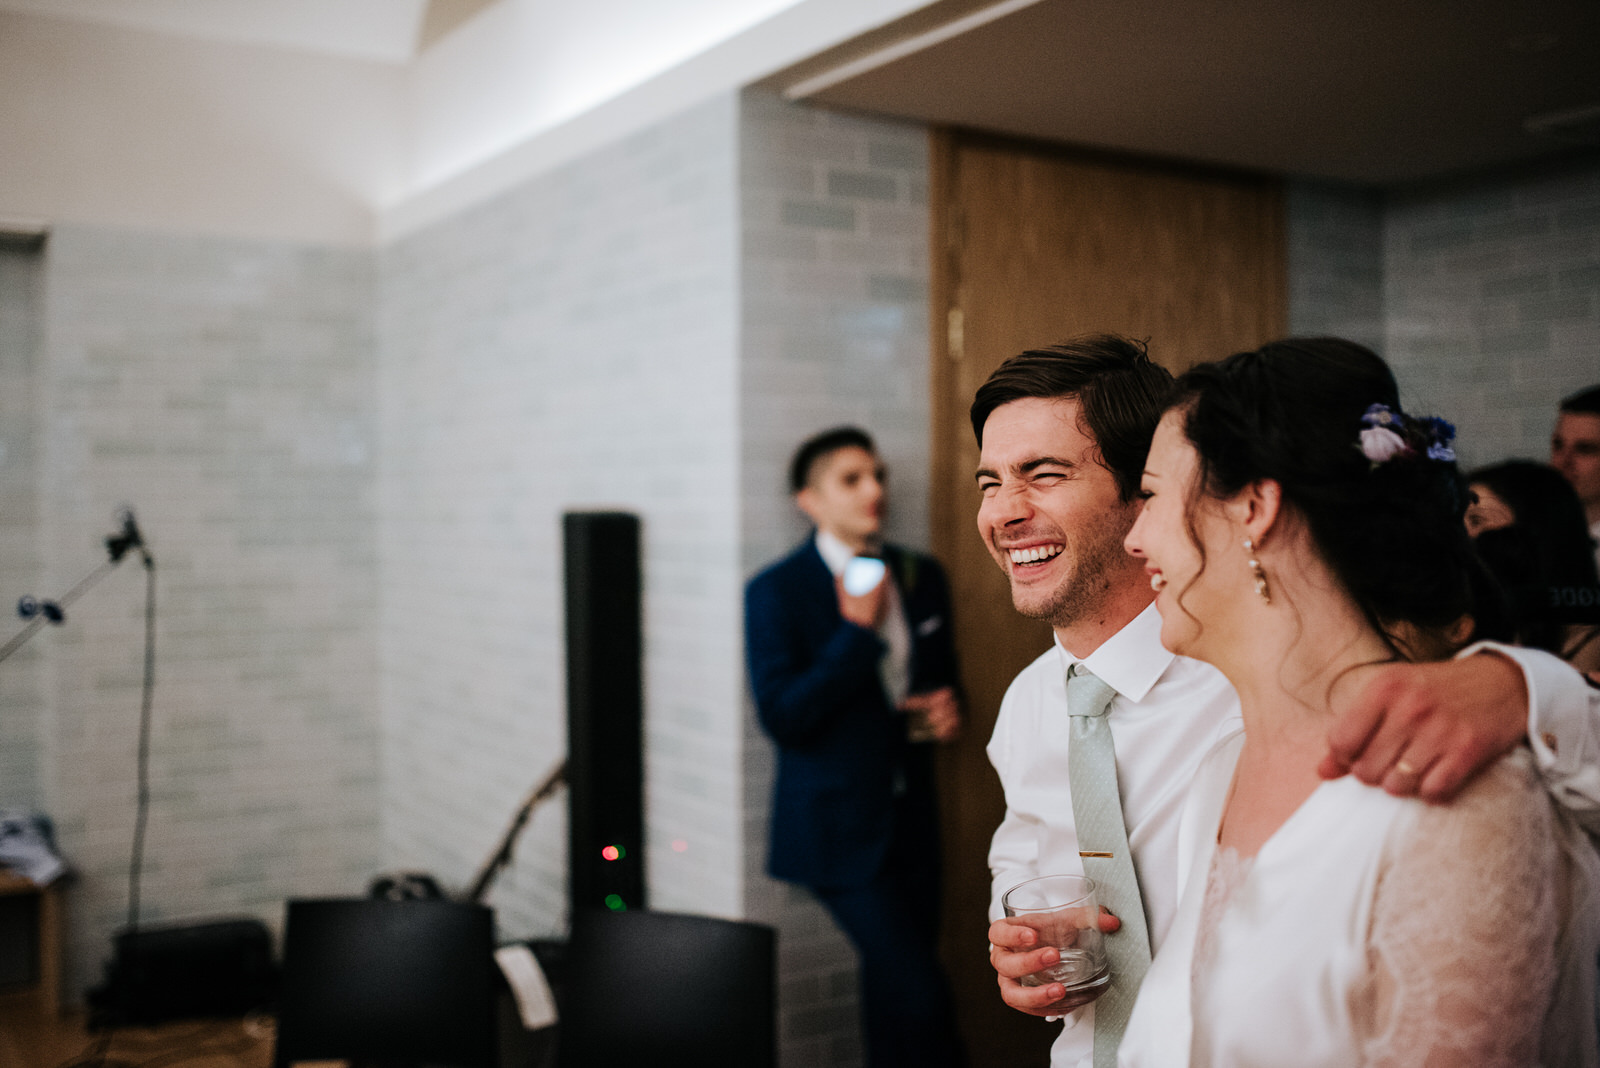 Groom reacts to speeches by squeezing bride and smiling